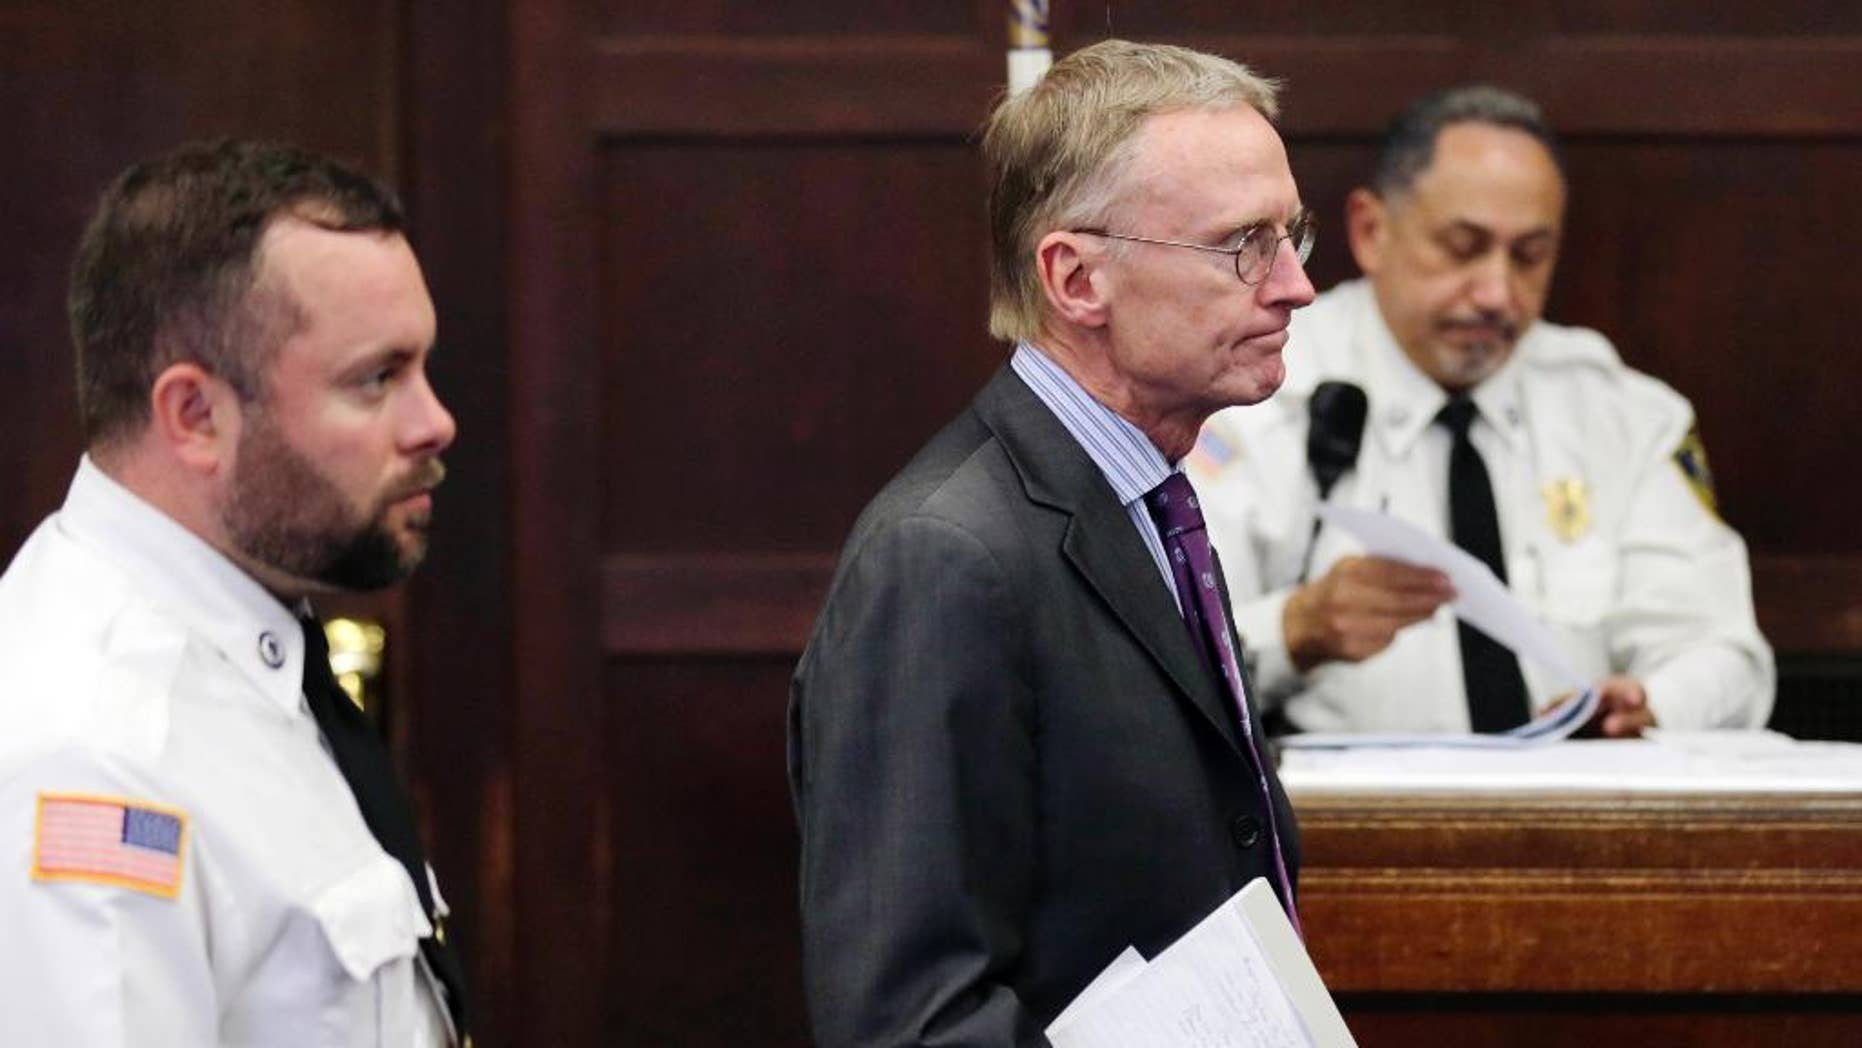 FILE - Charles Rankin, lawyer for former New England Patriots football player Aaron Hernandez, stands before Judge Jeffrey Locke during a hearing at Suffolk Superior Court in Boston, in this Oct. 21, 2014 file photo.  The lawyers for former New England Patriots player Aaron Hernandez are set to go before a judge Thursday Oct. 30, 2014 to argue that his trial in the 2013 killing of a semiprofessional football player should be moved because of intense pretrial media coverage. (AP Photo/Charles Krupa, Pool, File)